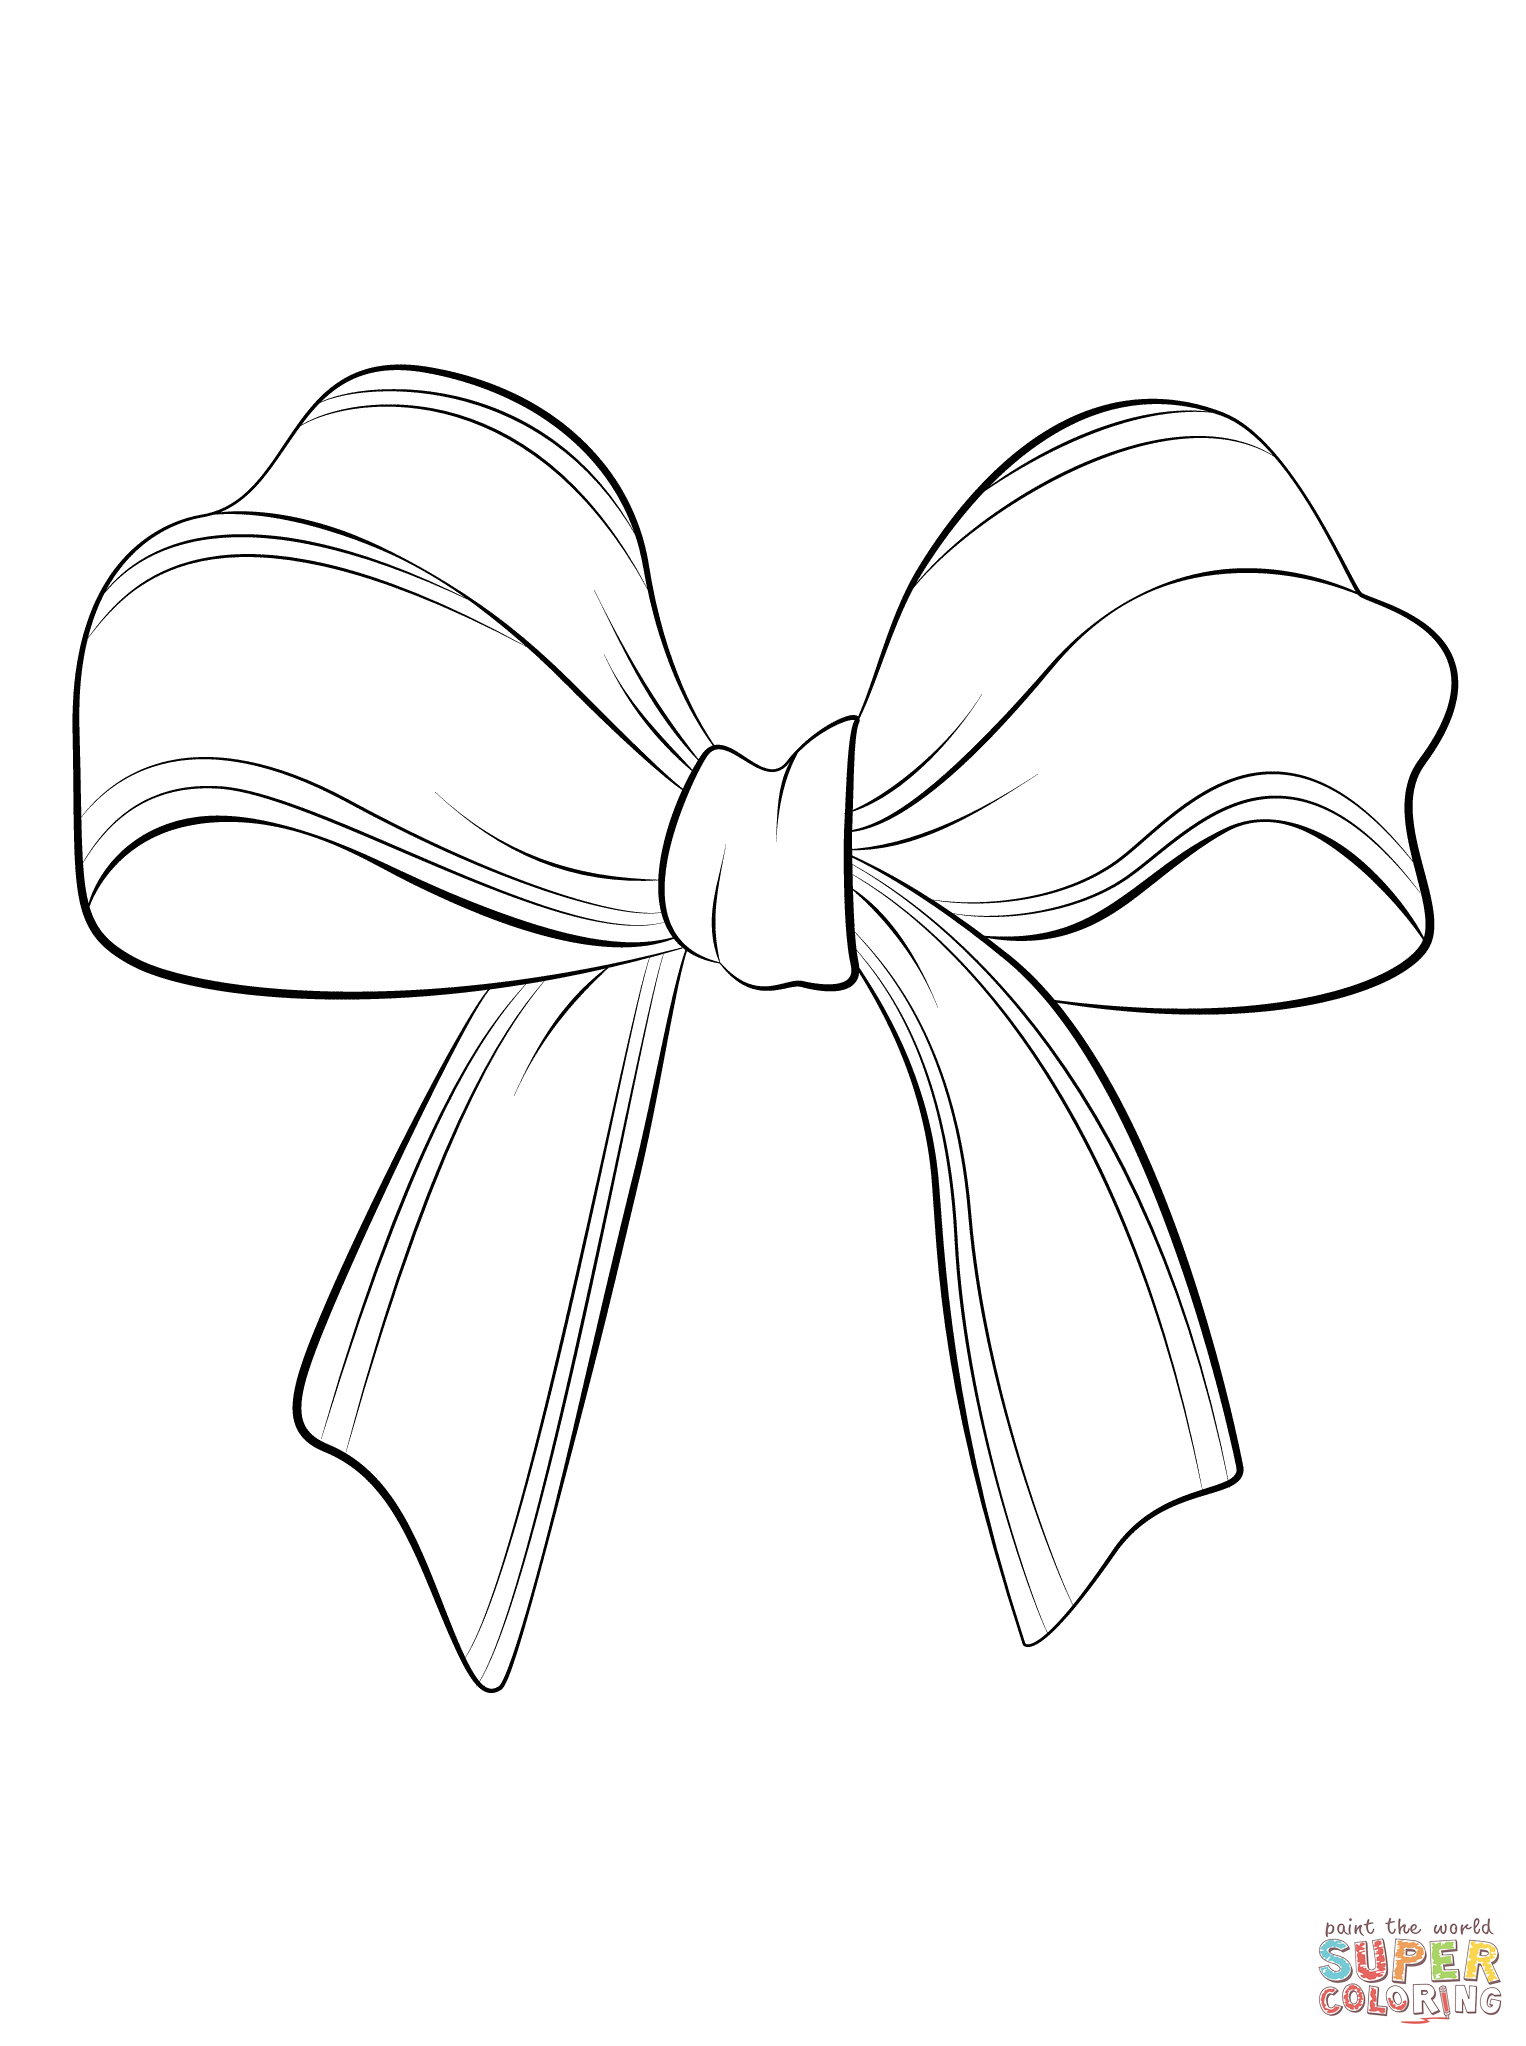 1526x2046 Christmas Bow Coloring Page Free Printable Coloring Pages